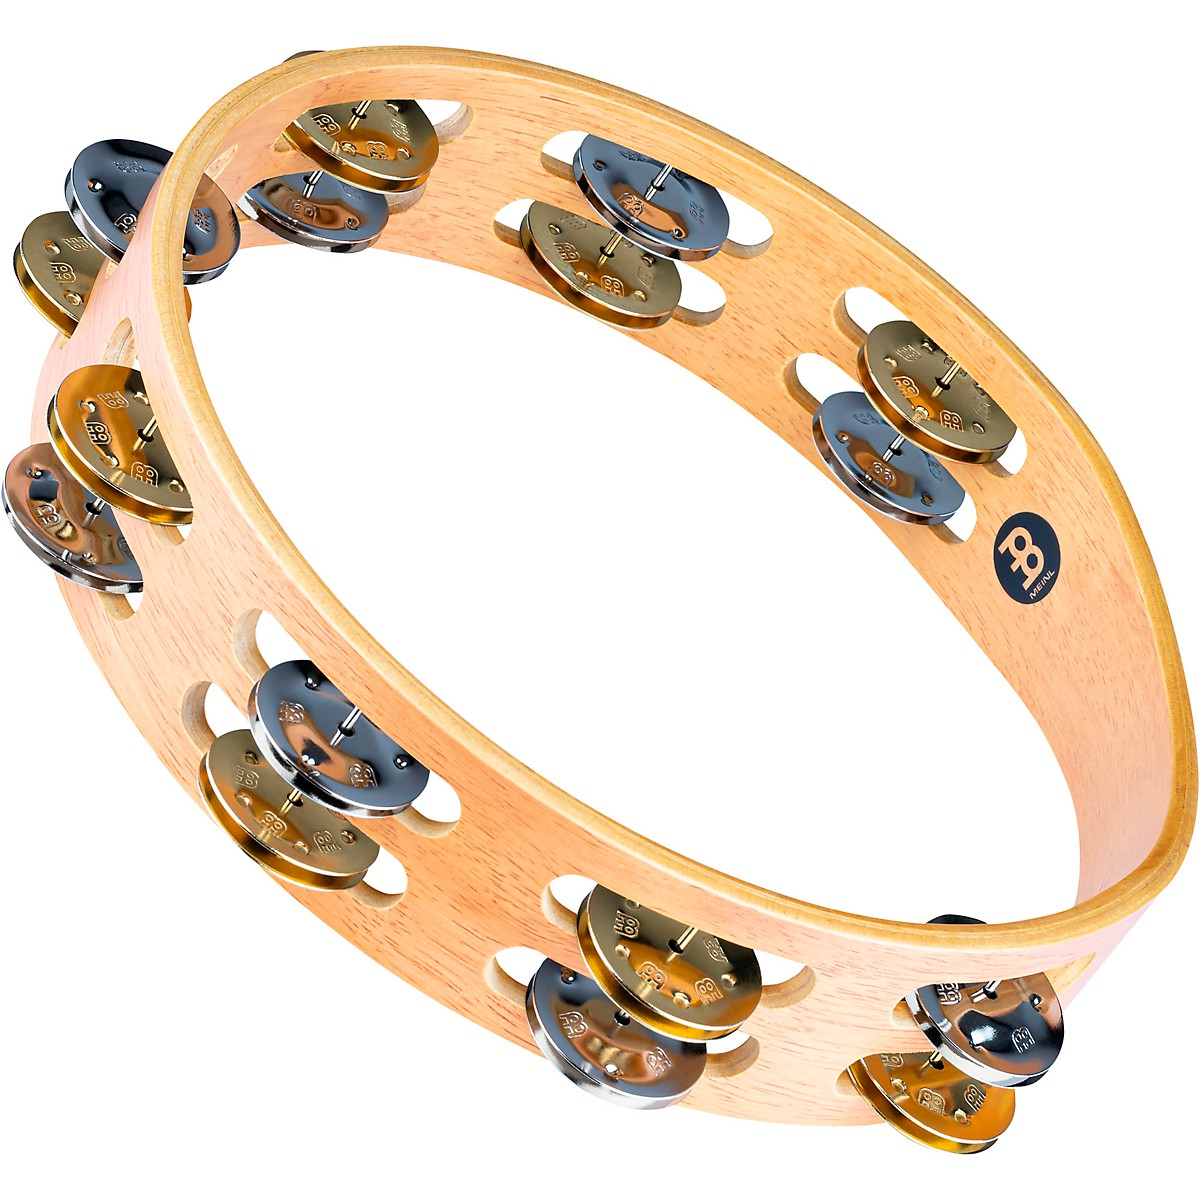 Meinl Recording-Combo Wood Tambourine Two Rows Dual Alloy Jingles